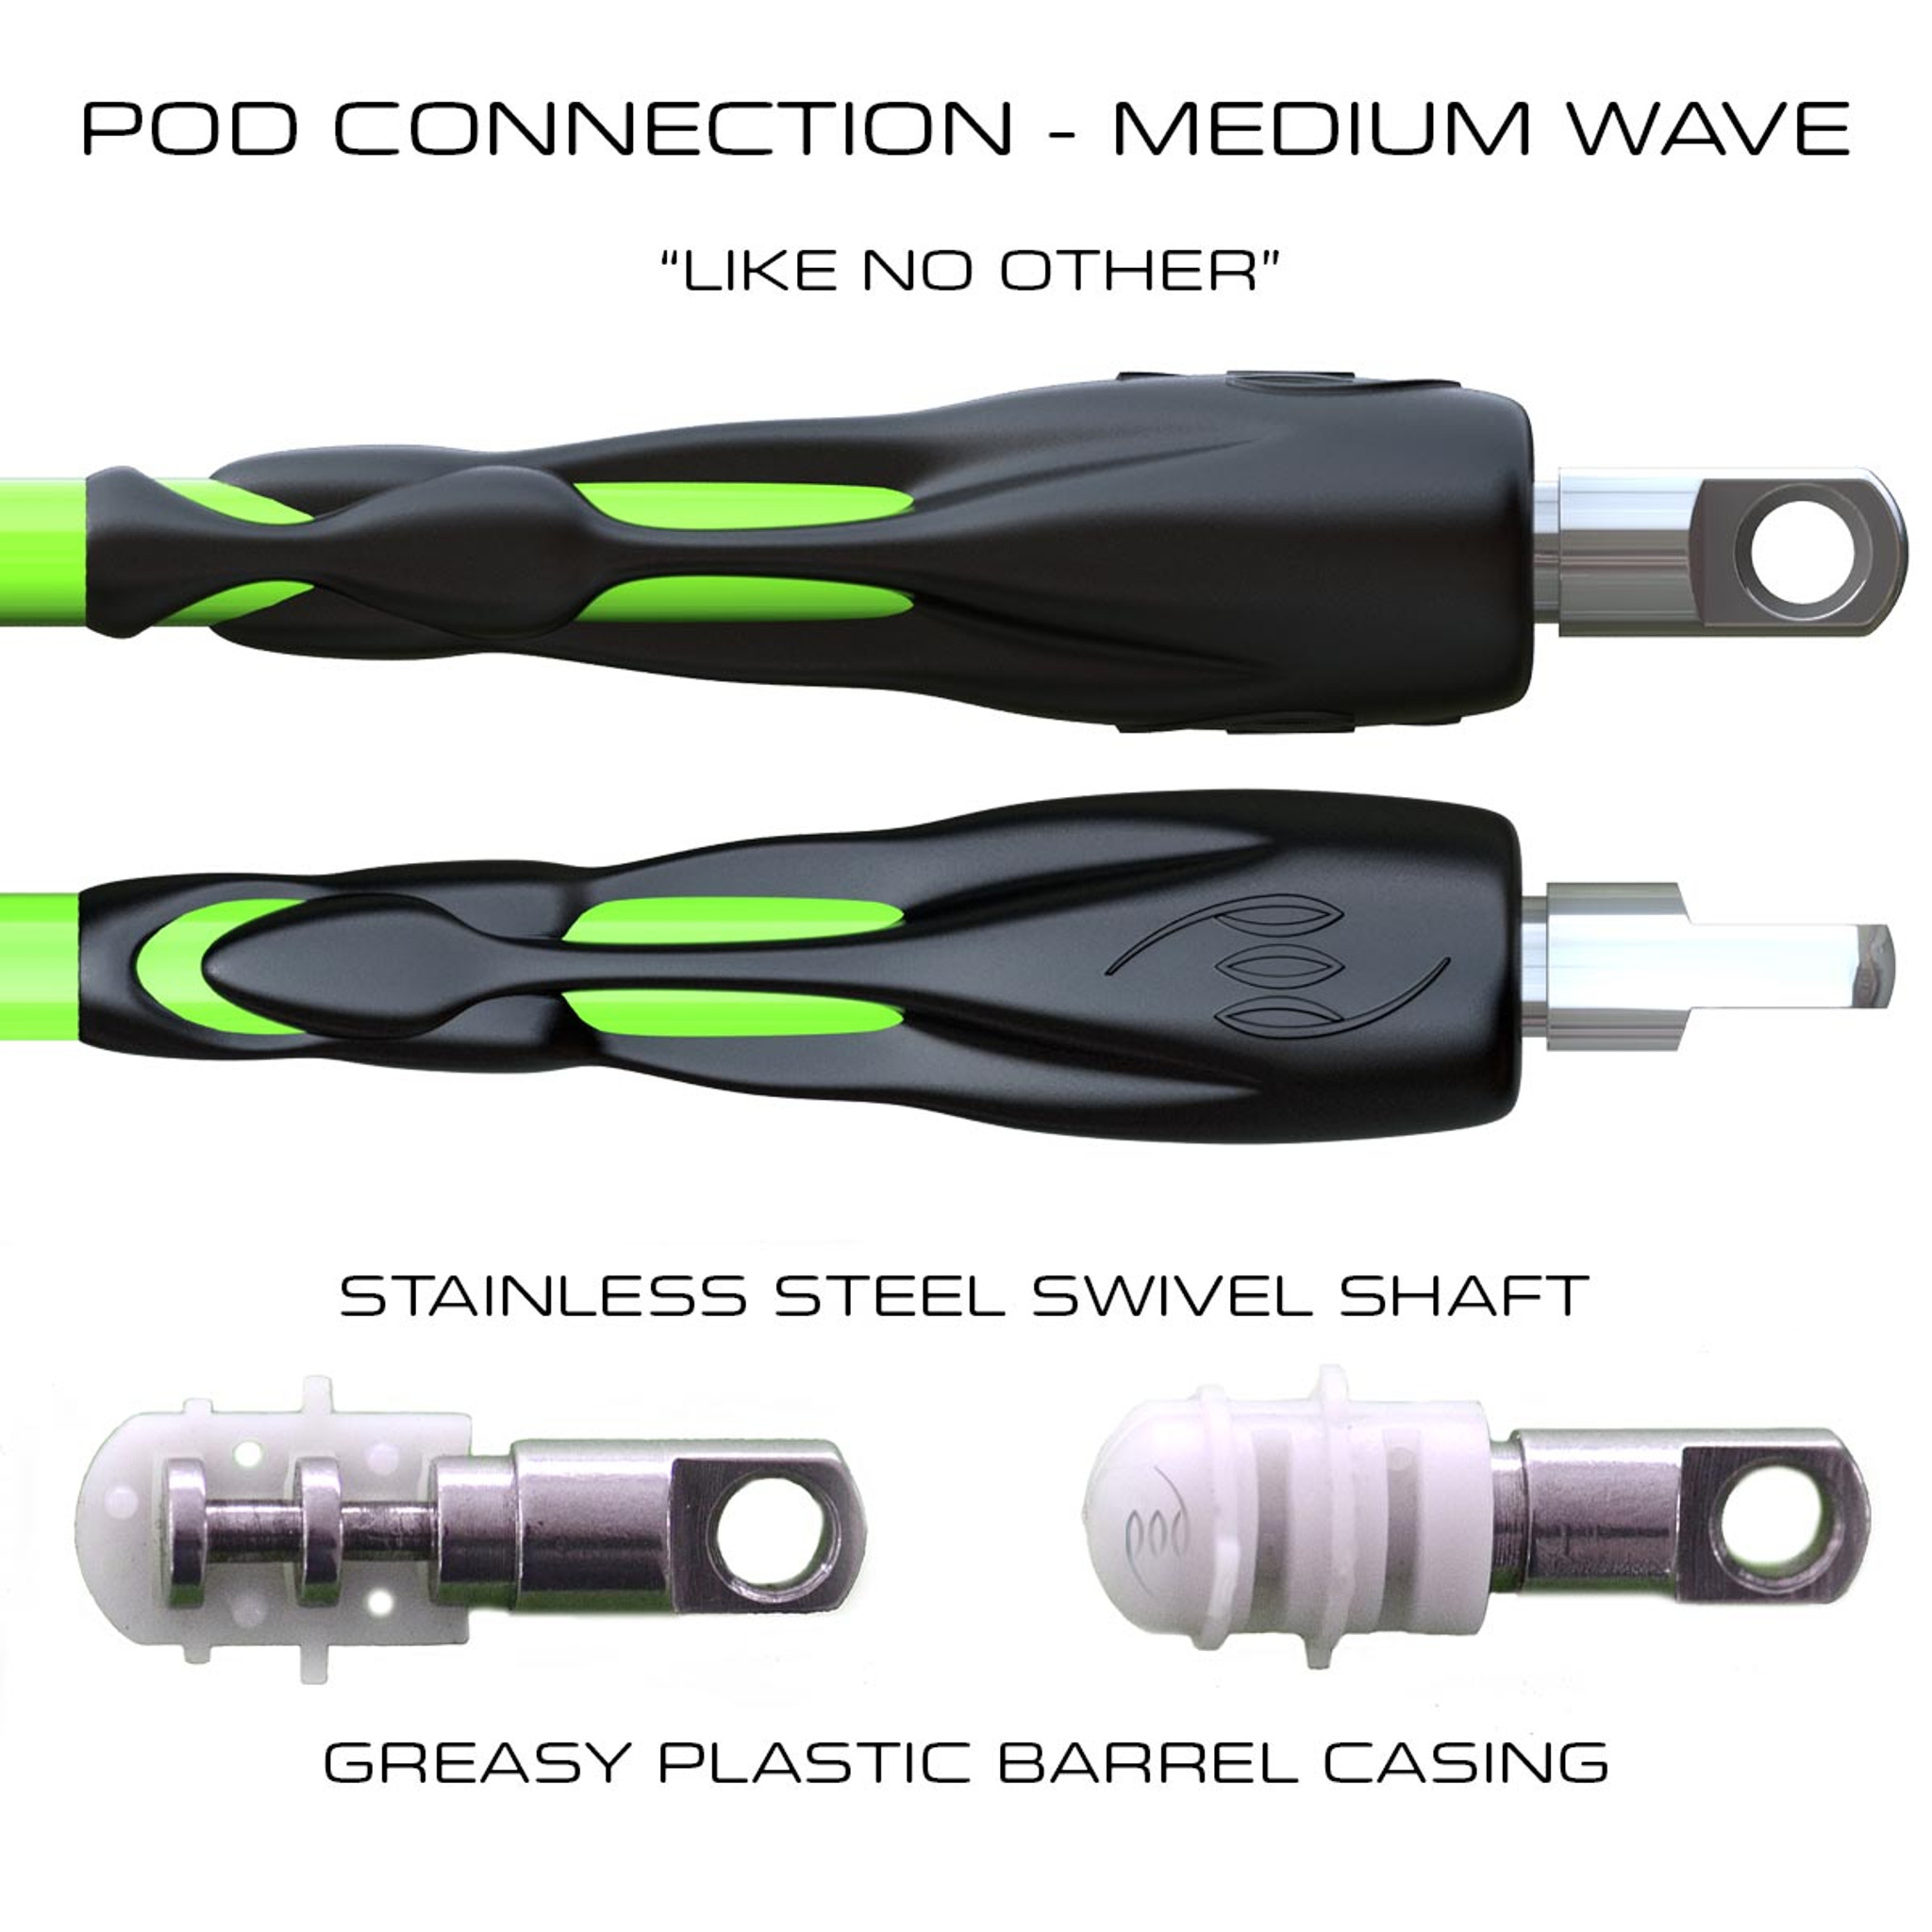 POD Connection 8ft Leg Ropes - Surfing Medium Waves